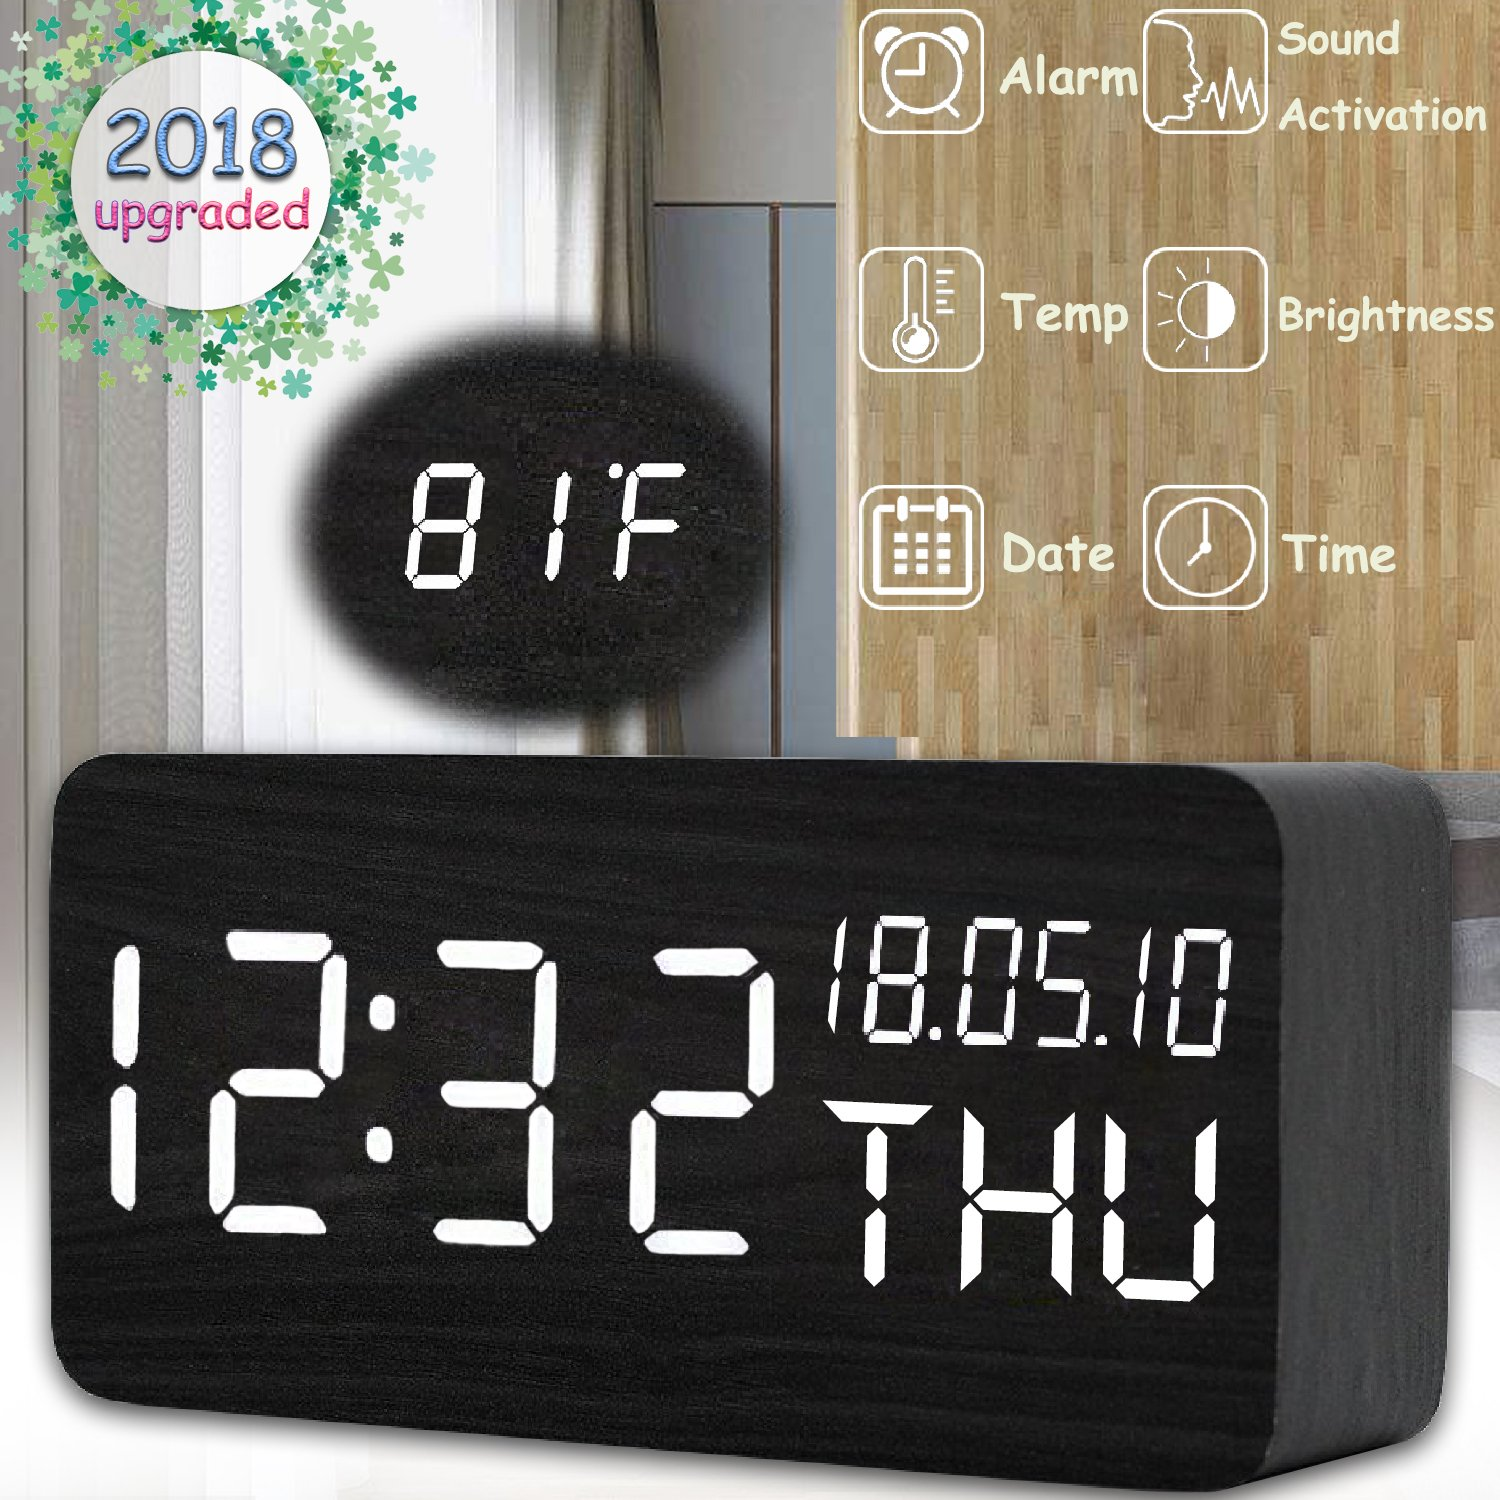 YAKOO LED Digital Alarm Clock - Electronic Wood Alarm Clock Triple Alarms Temperature Brightness Sound Control 12/24H Time Date Week Battery USB Desk Display Clock Office Bedroom Home Heavy Sleepers